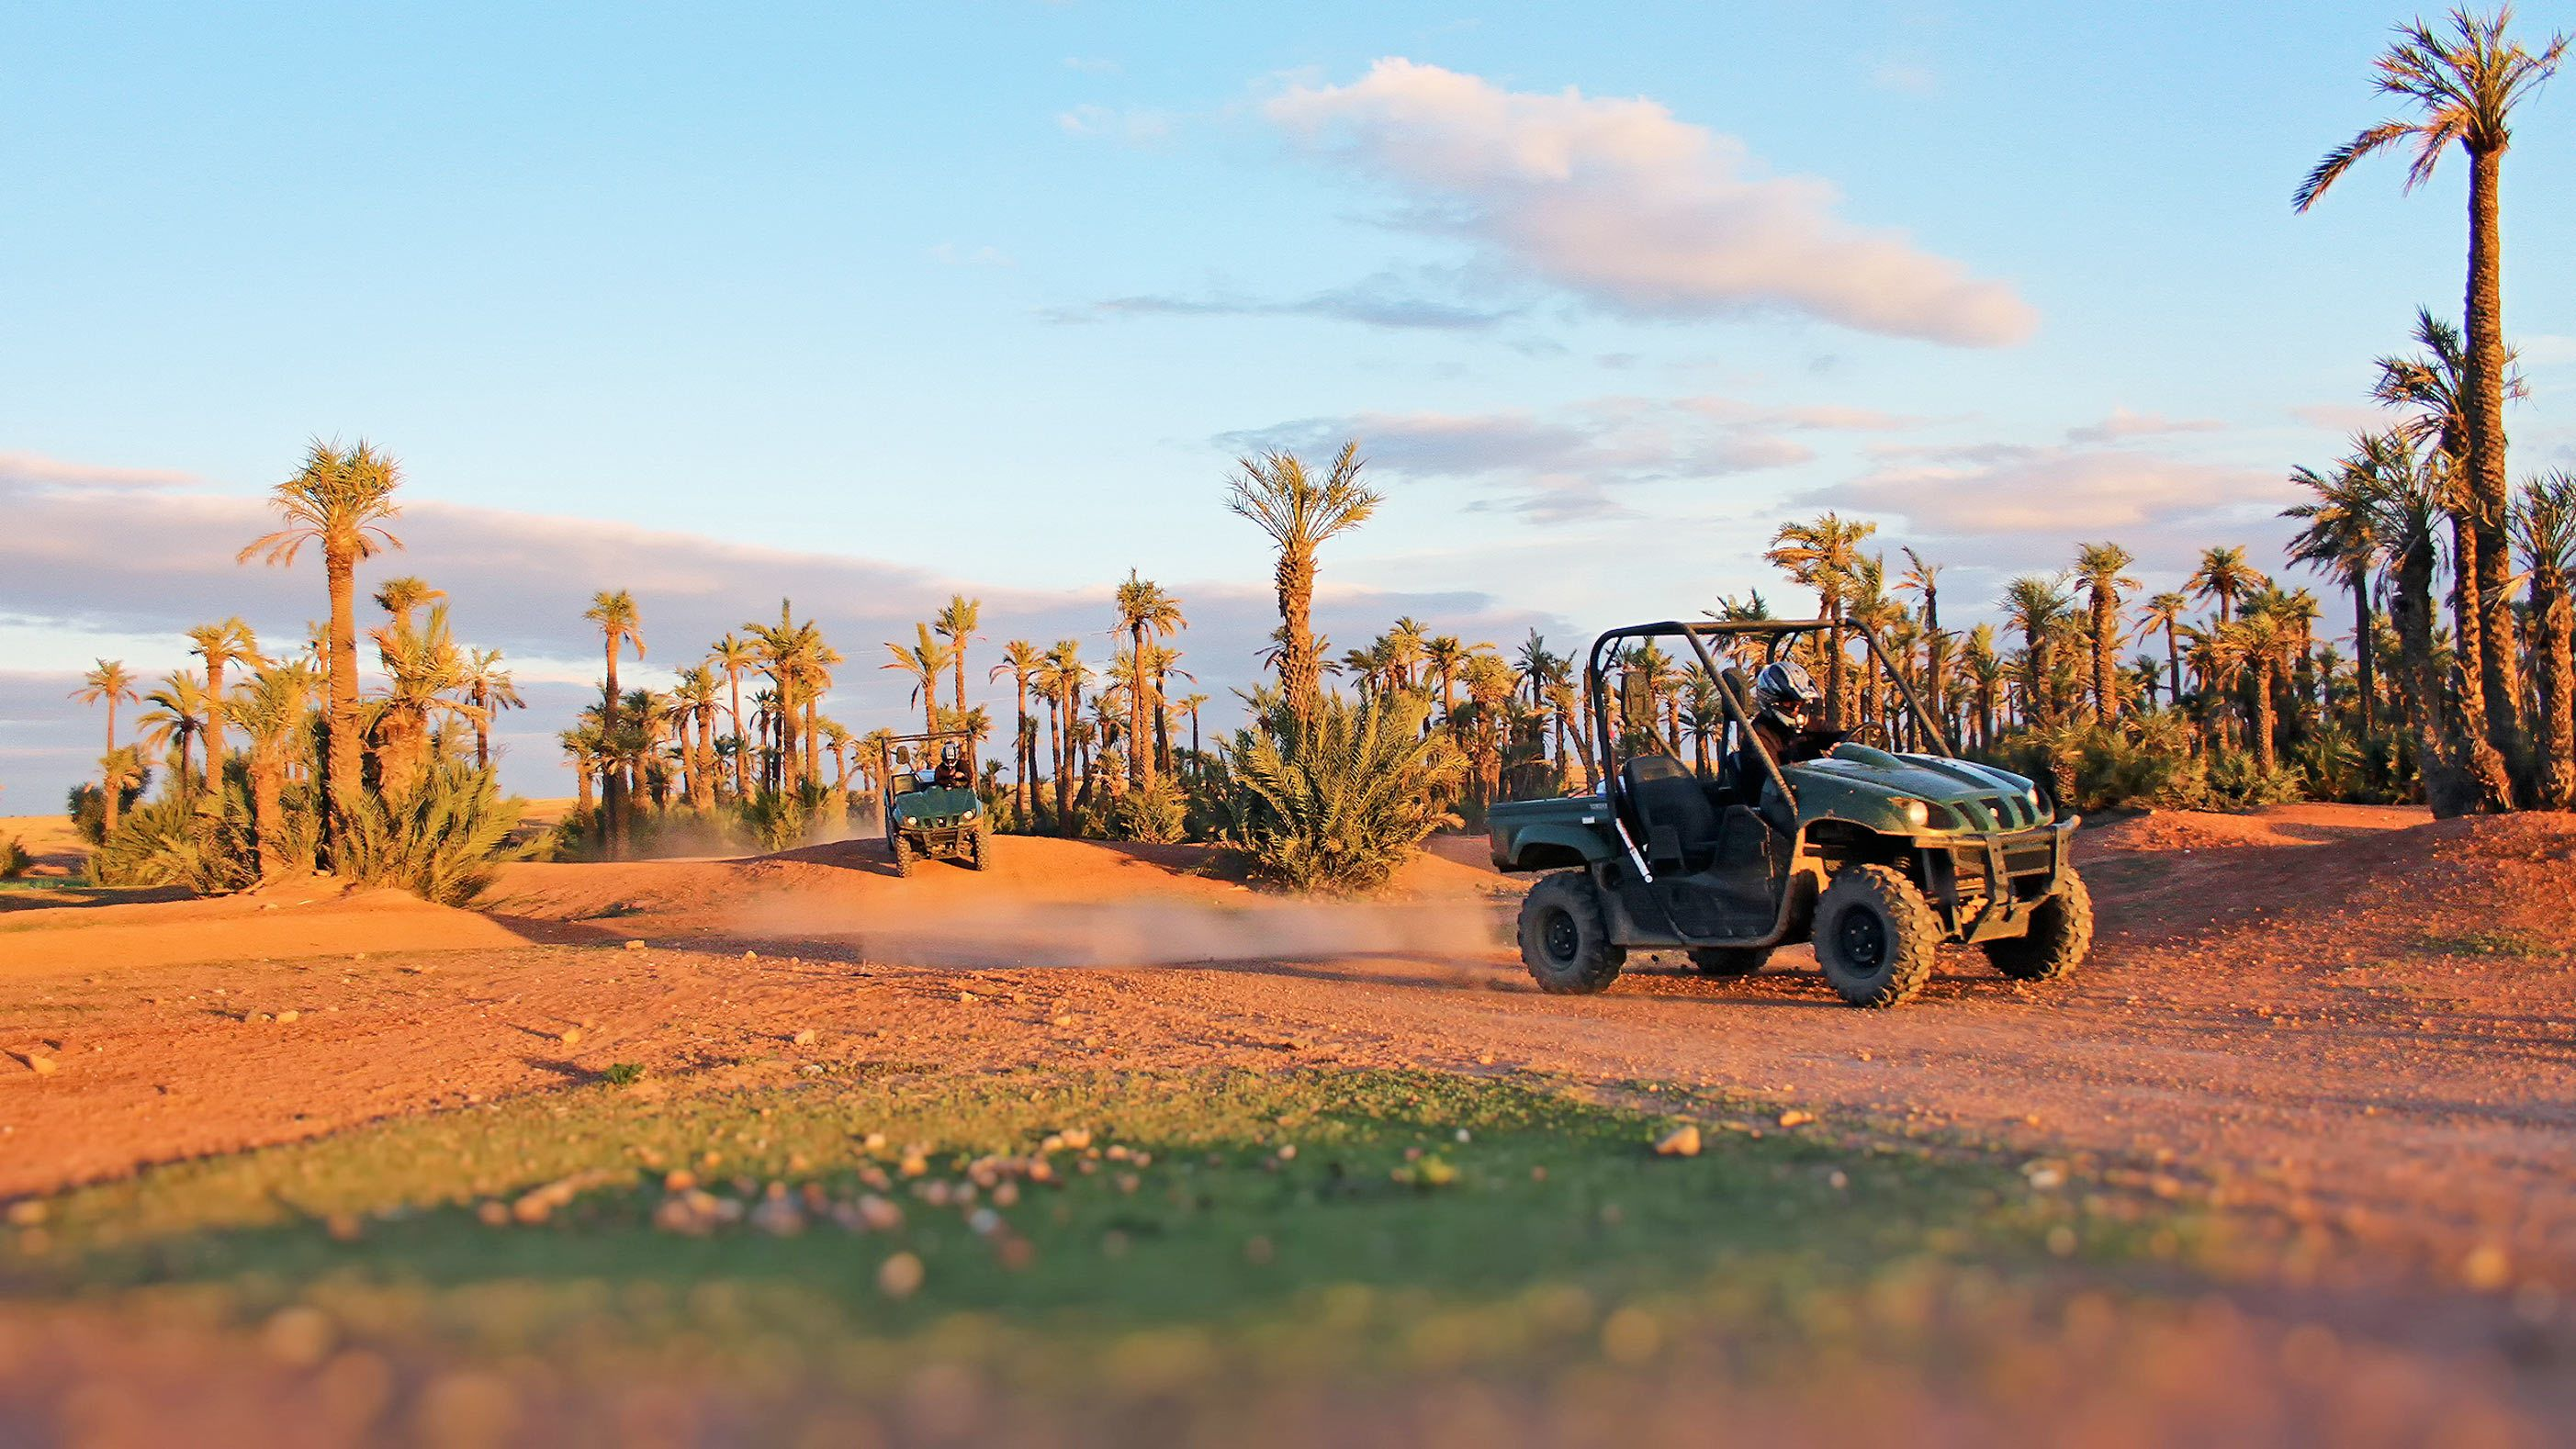 Sunset view of the Desert Buggy Tour in Jbilets Mountains of Marrakech